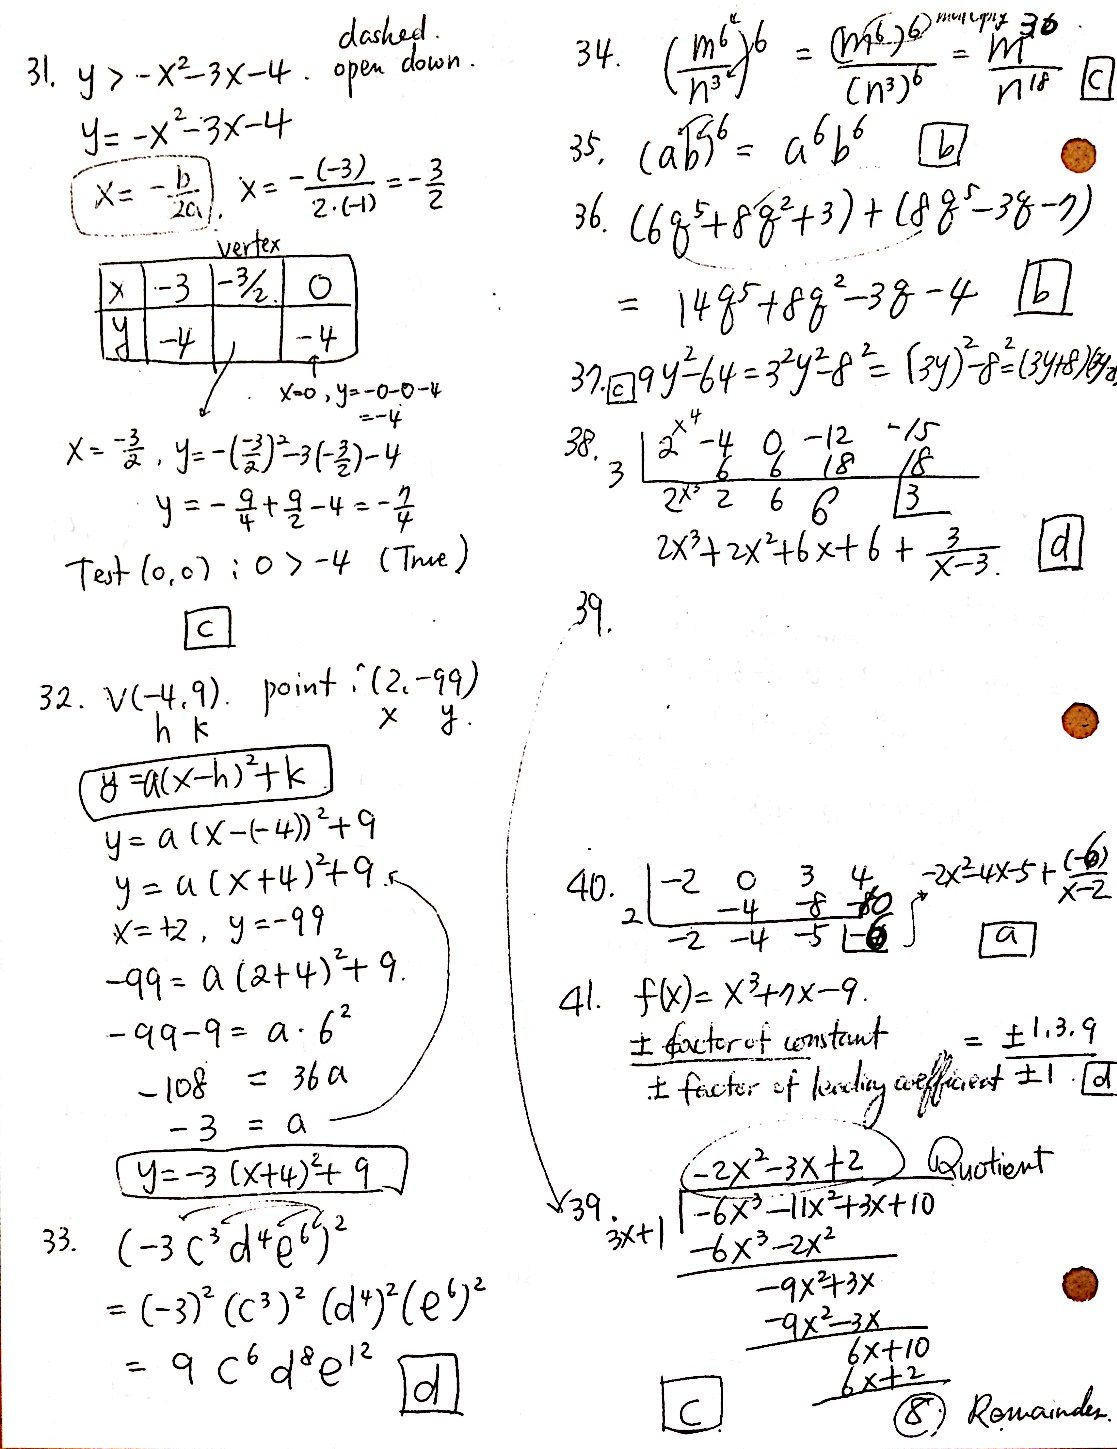 helping math problems helping kids solve math problems math  math homework help and answers additional activities research links chapter quizzes and more view homework help